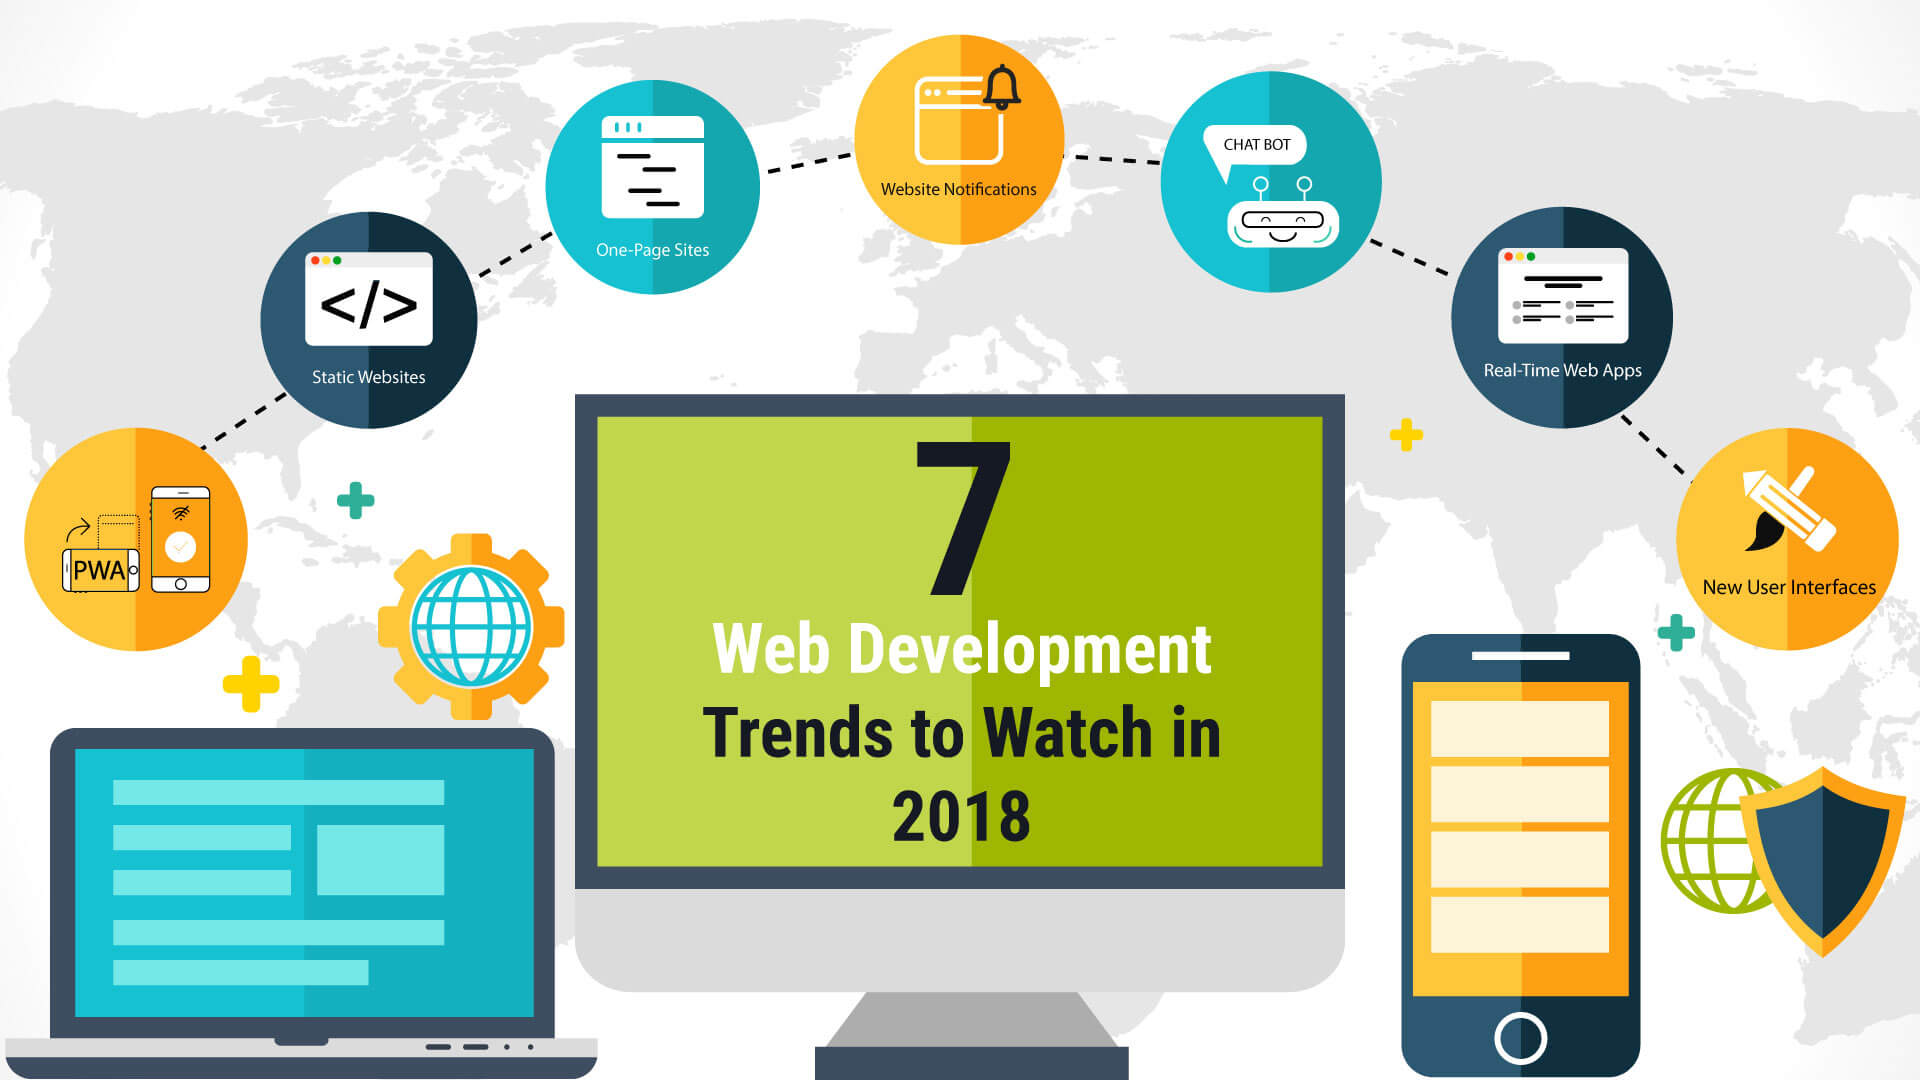 7 Web Development Trends to Watch in 2018